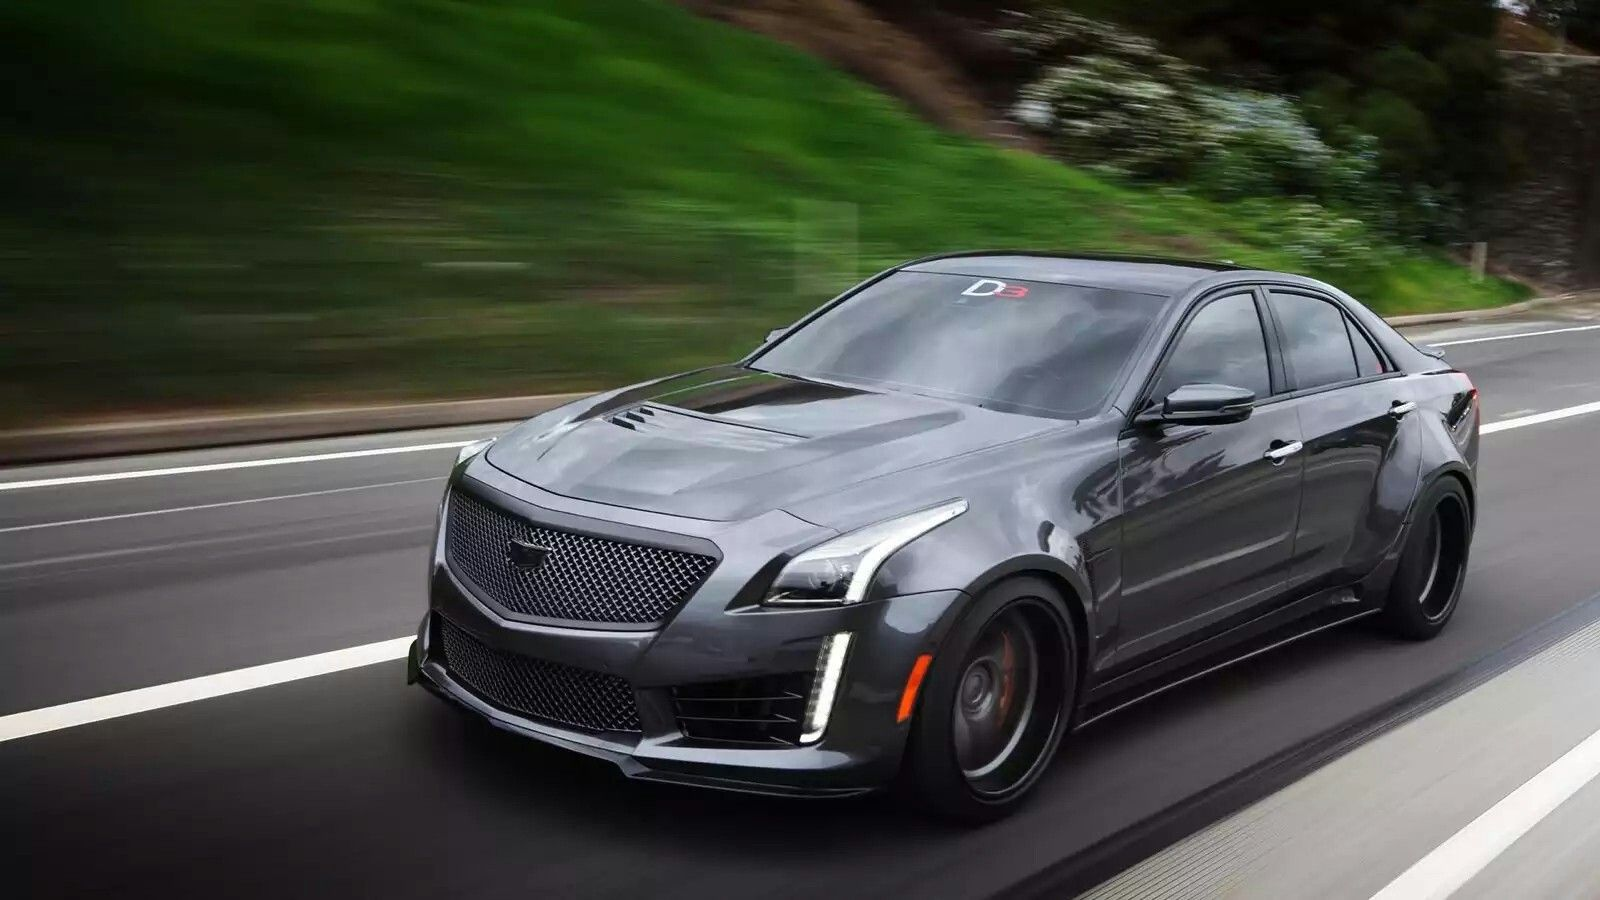 2020 Cadillac ATS-V Coupe New Model and Performance